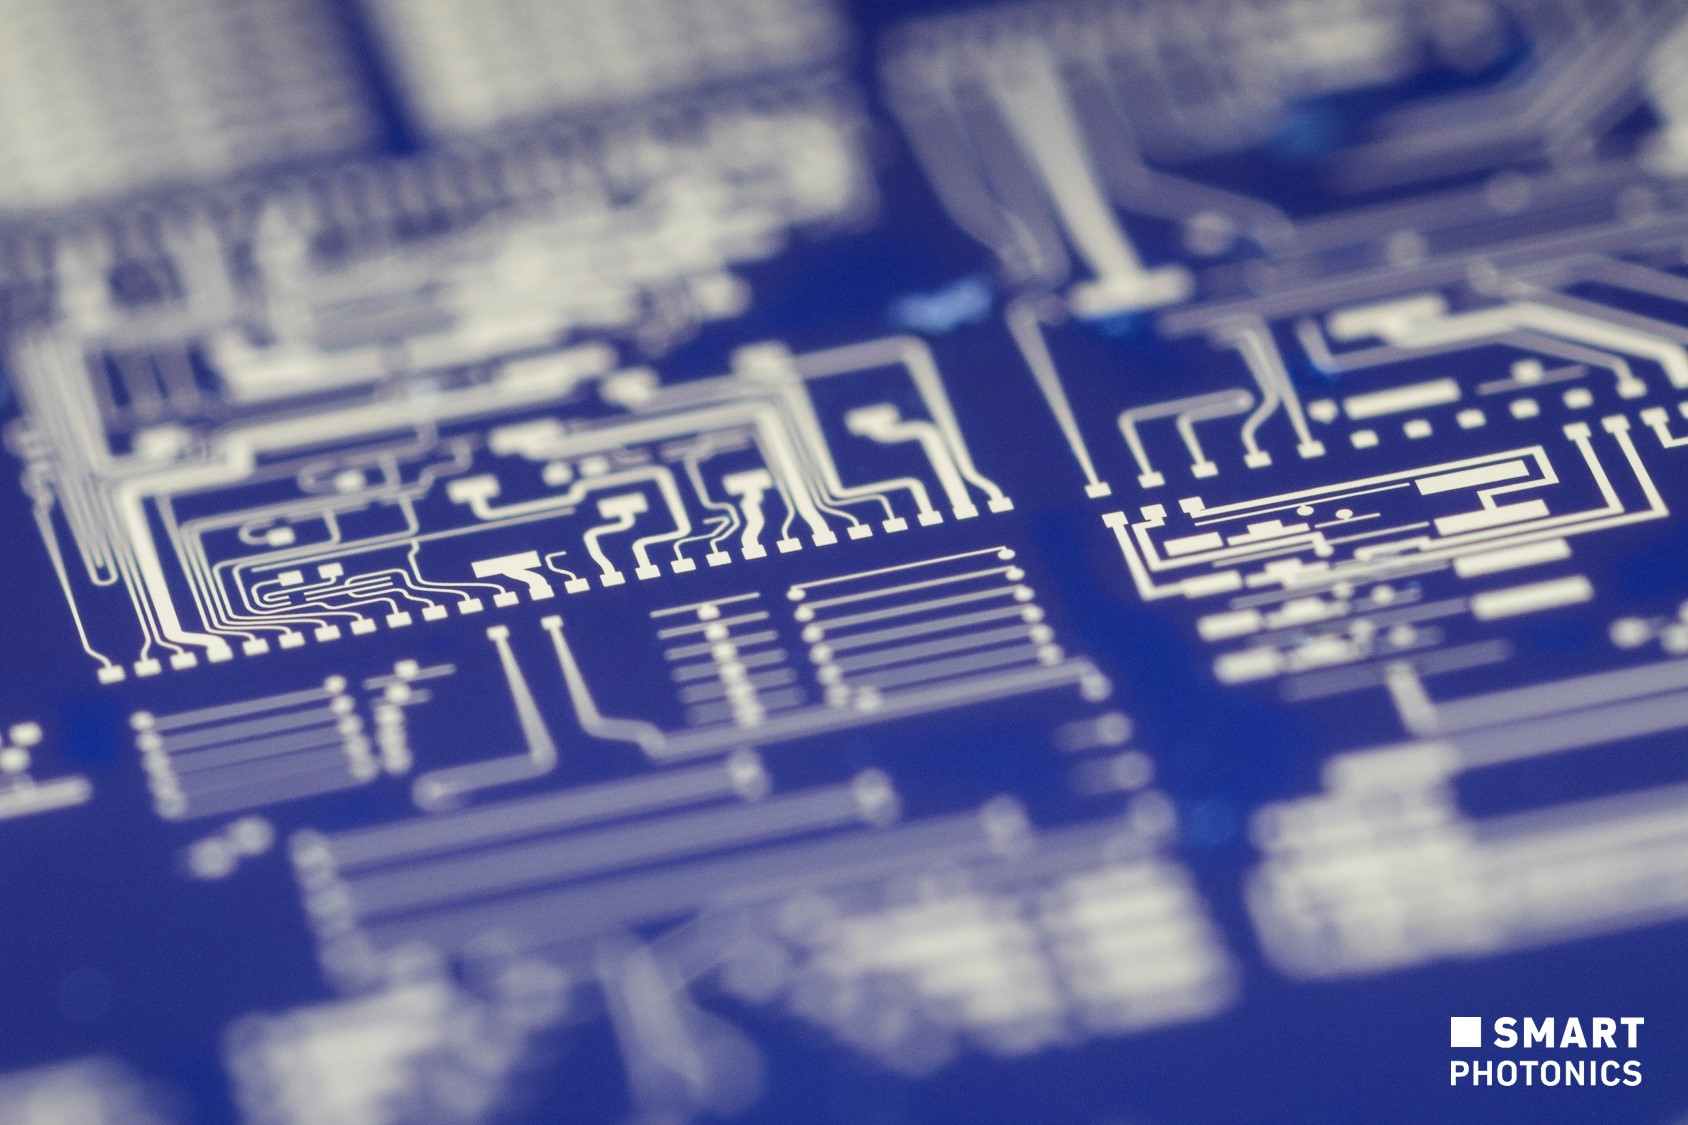 Dutch Government Investing In Smart Photonics To Preserve